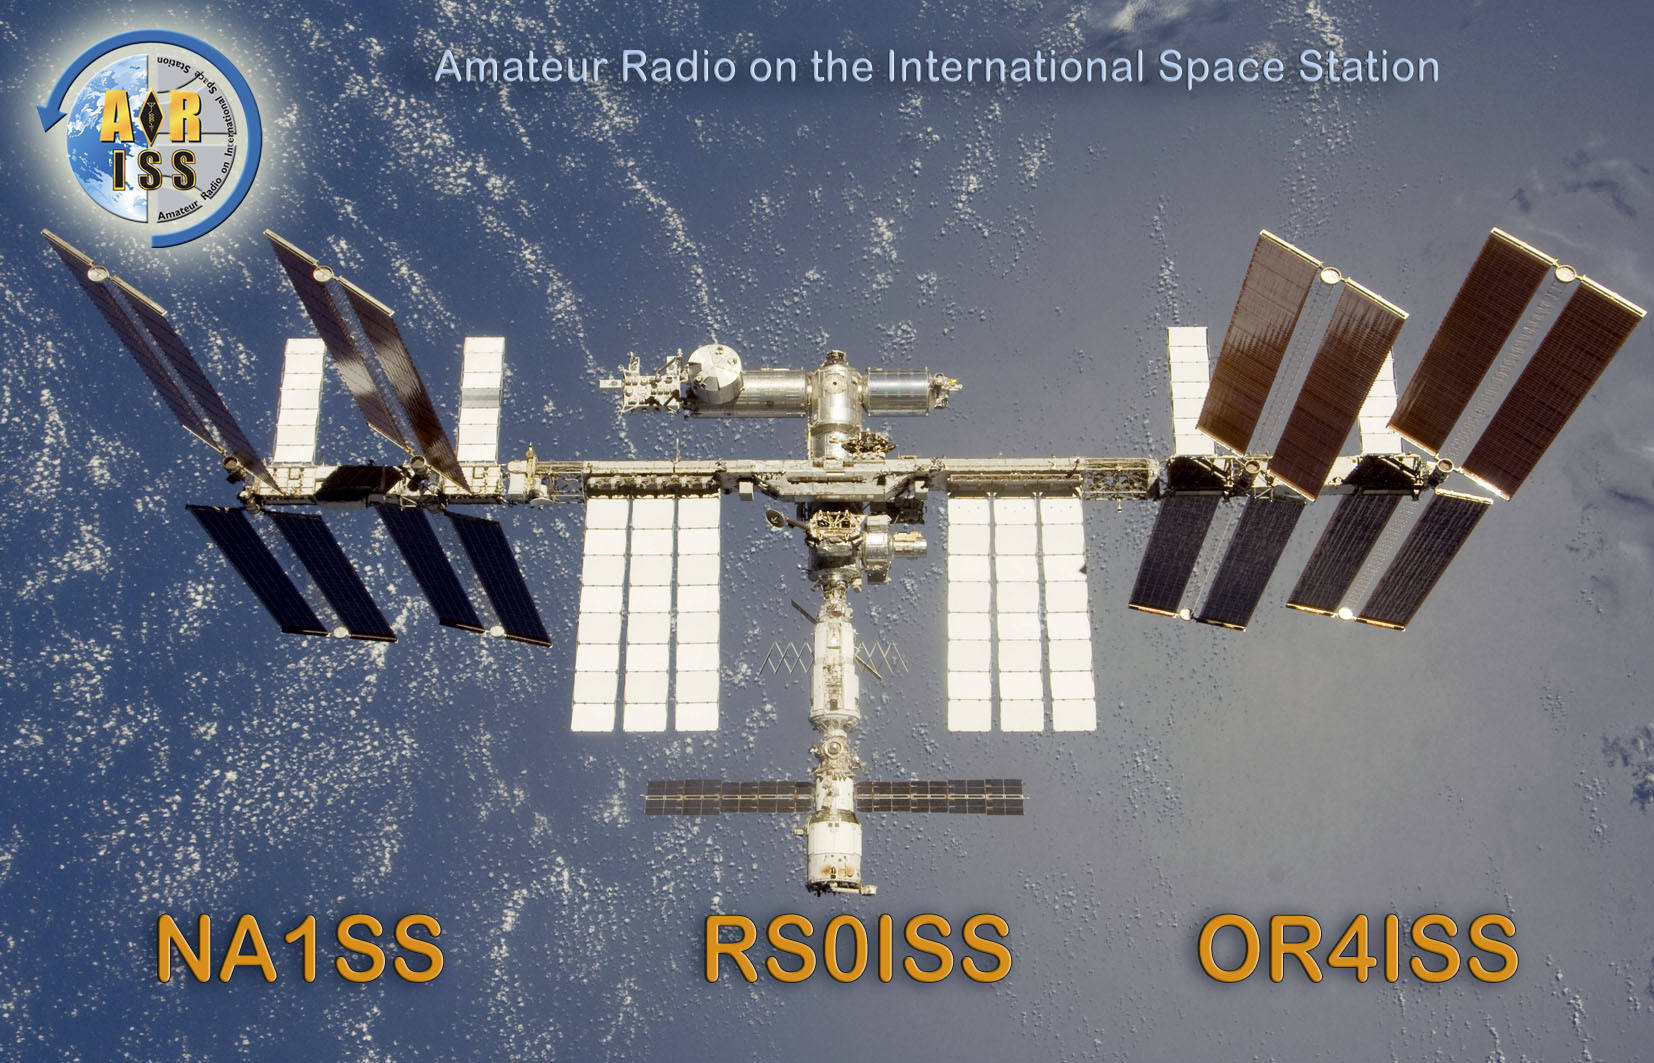 ARISS Postpones Anniversary SSTV Event